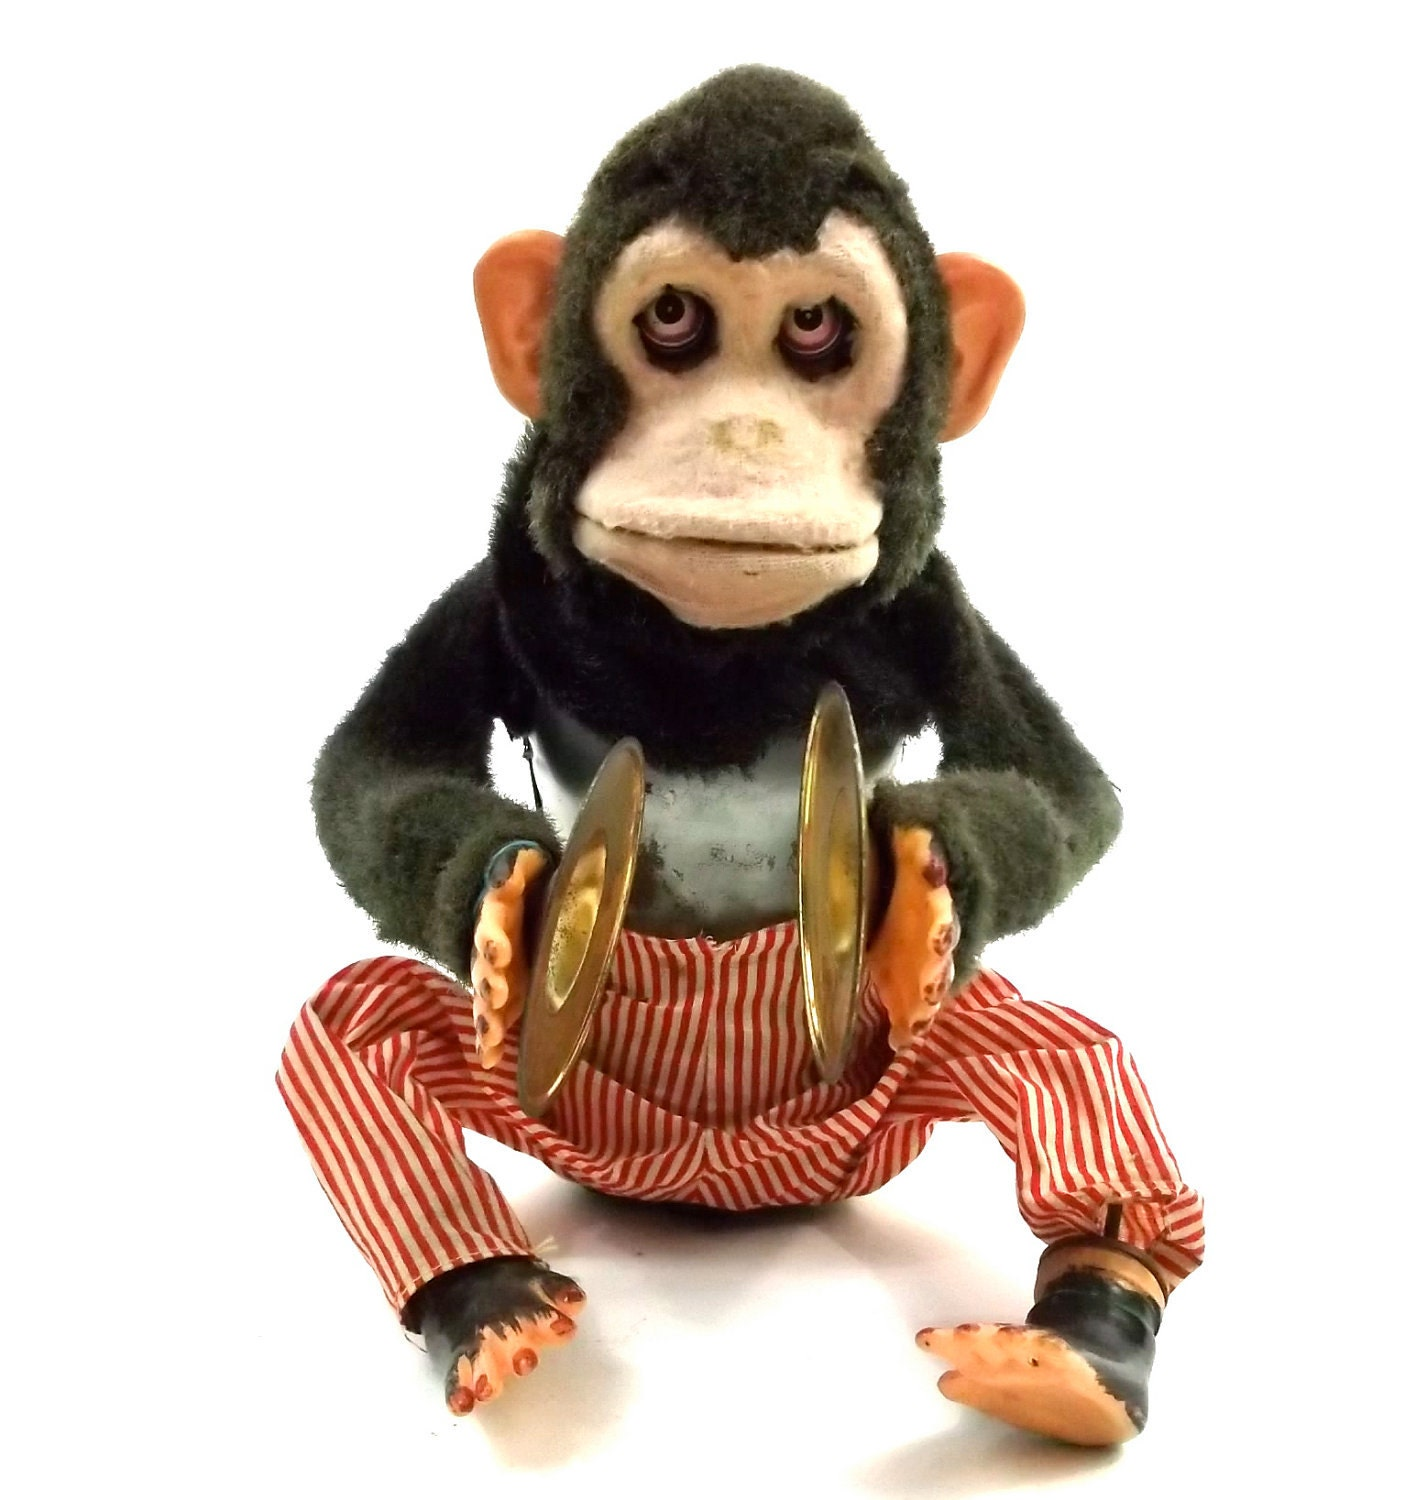 Antique Monkey Battery Operated Wind Up Style Toy Creepy